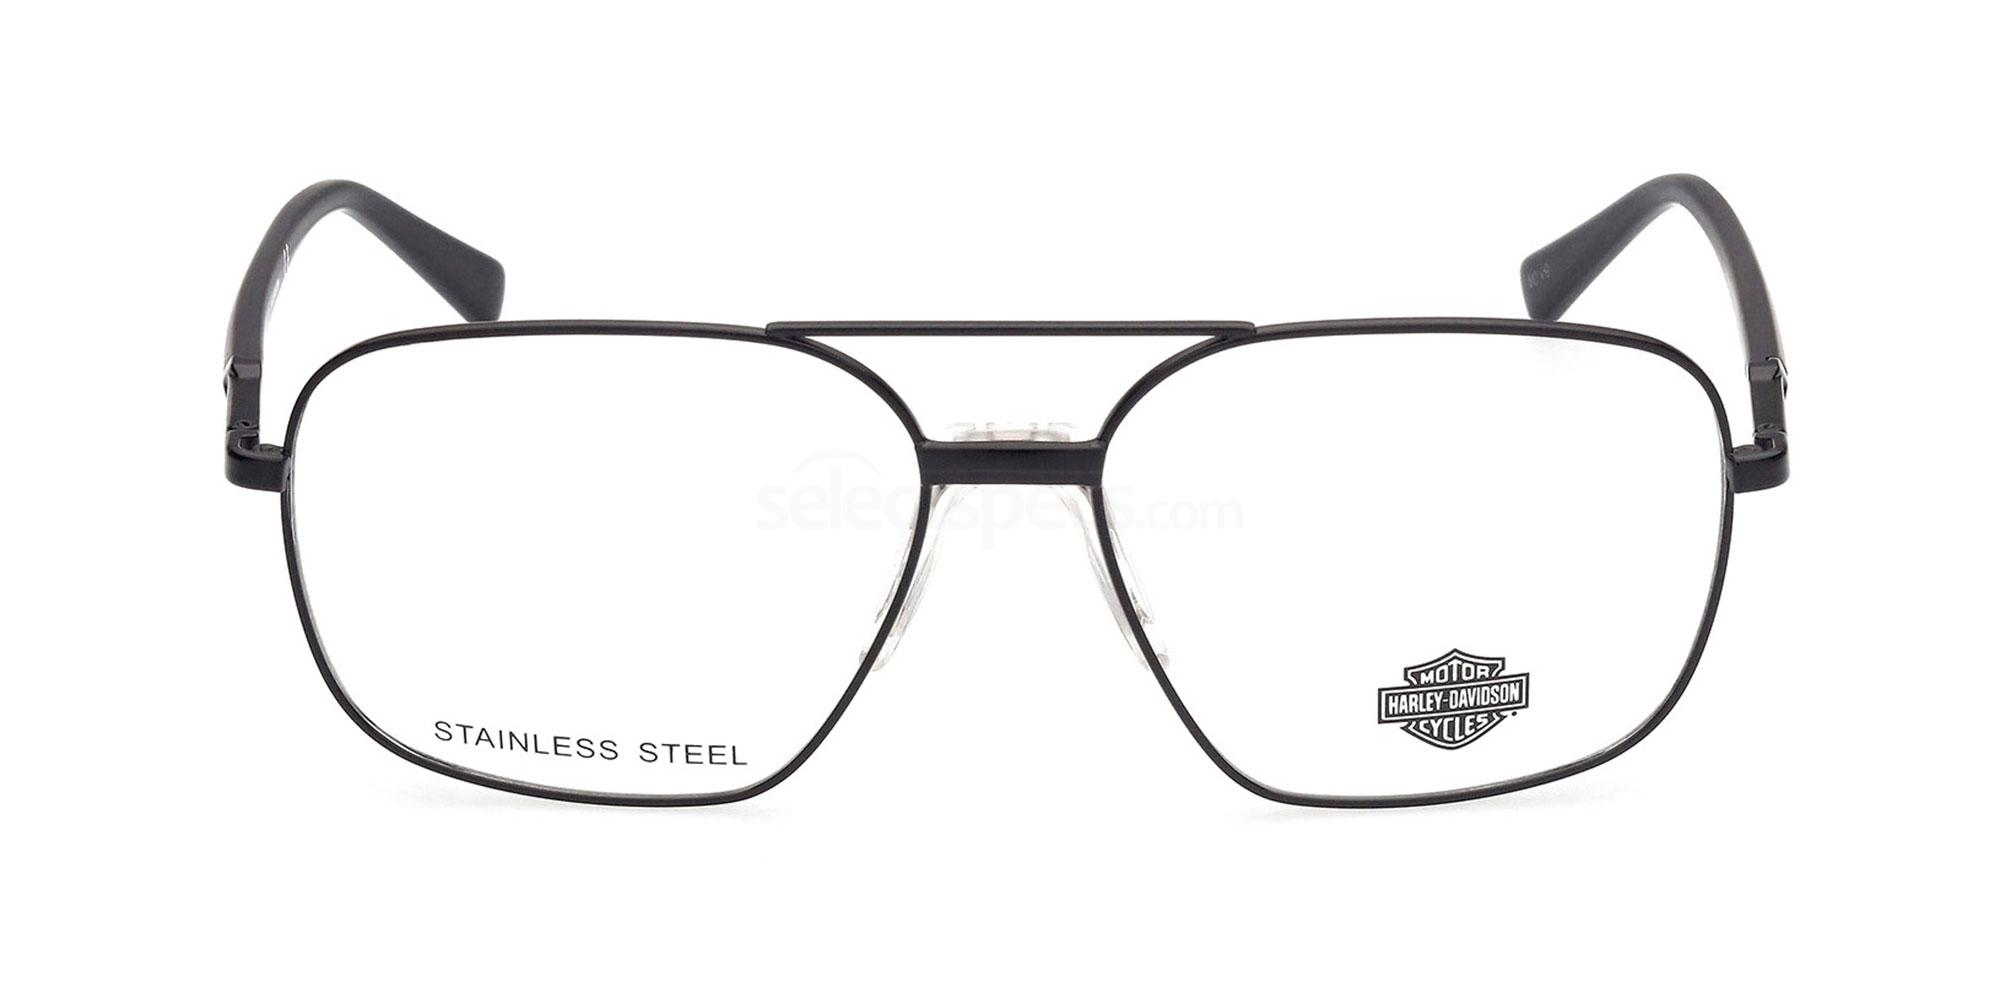 002 HD0827 Glasses, Harley Davidson